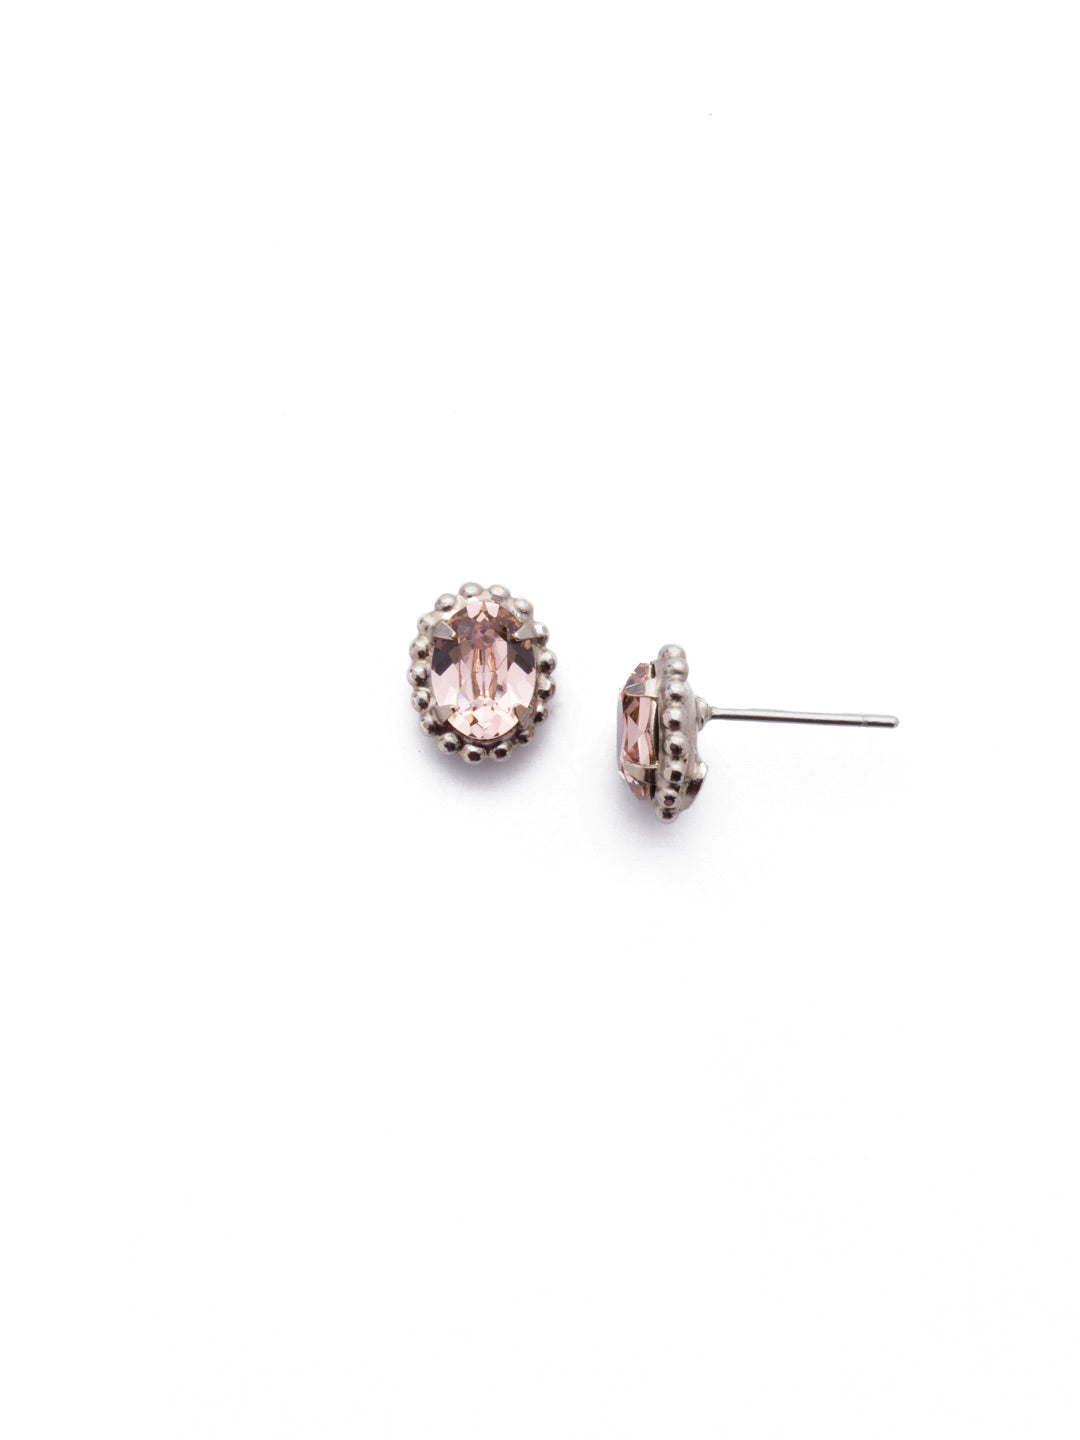 Maisie Stud Earrings - EEH11ASVIN